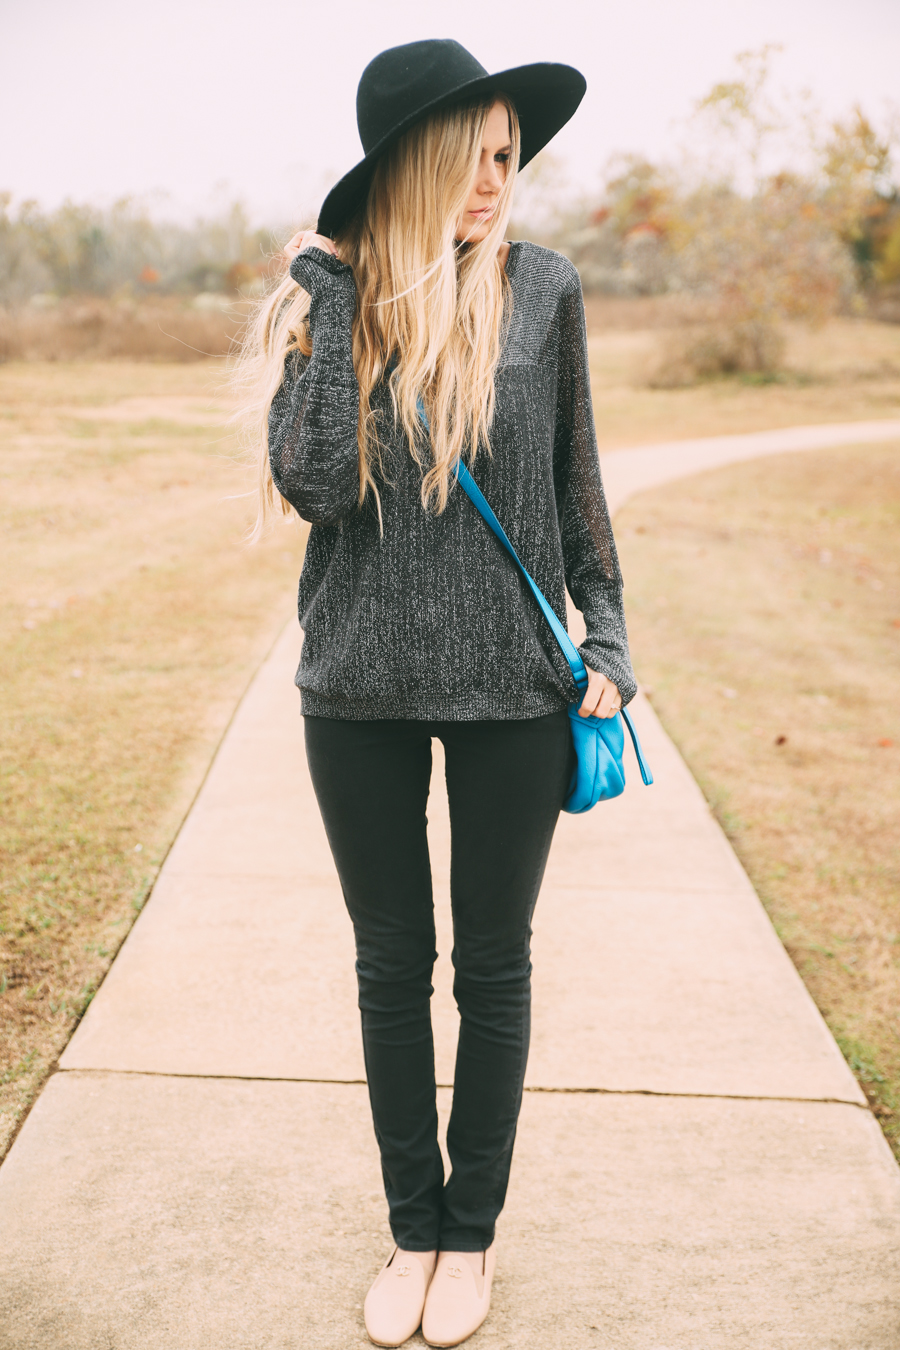 Amber Fillerup Clark in her grey sweater and black jeans from Ruche, loafers from Chanel, bag from Marc Jacobs and the hat is from Forever 21